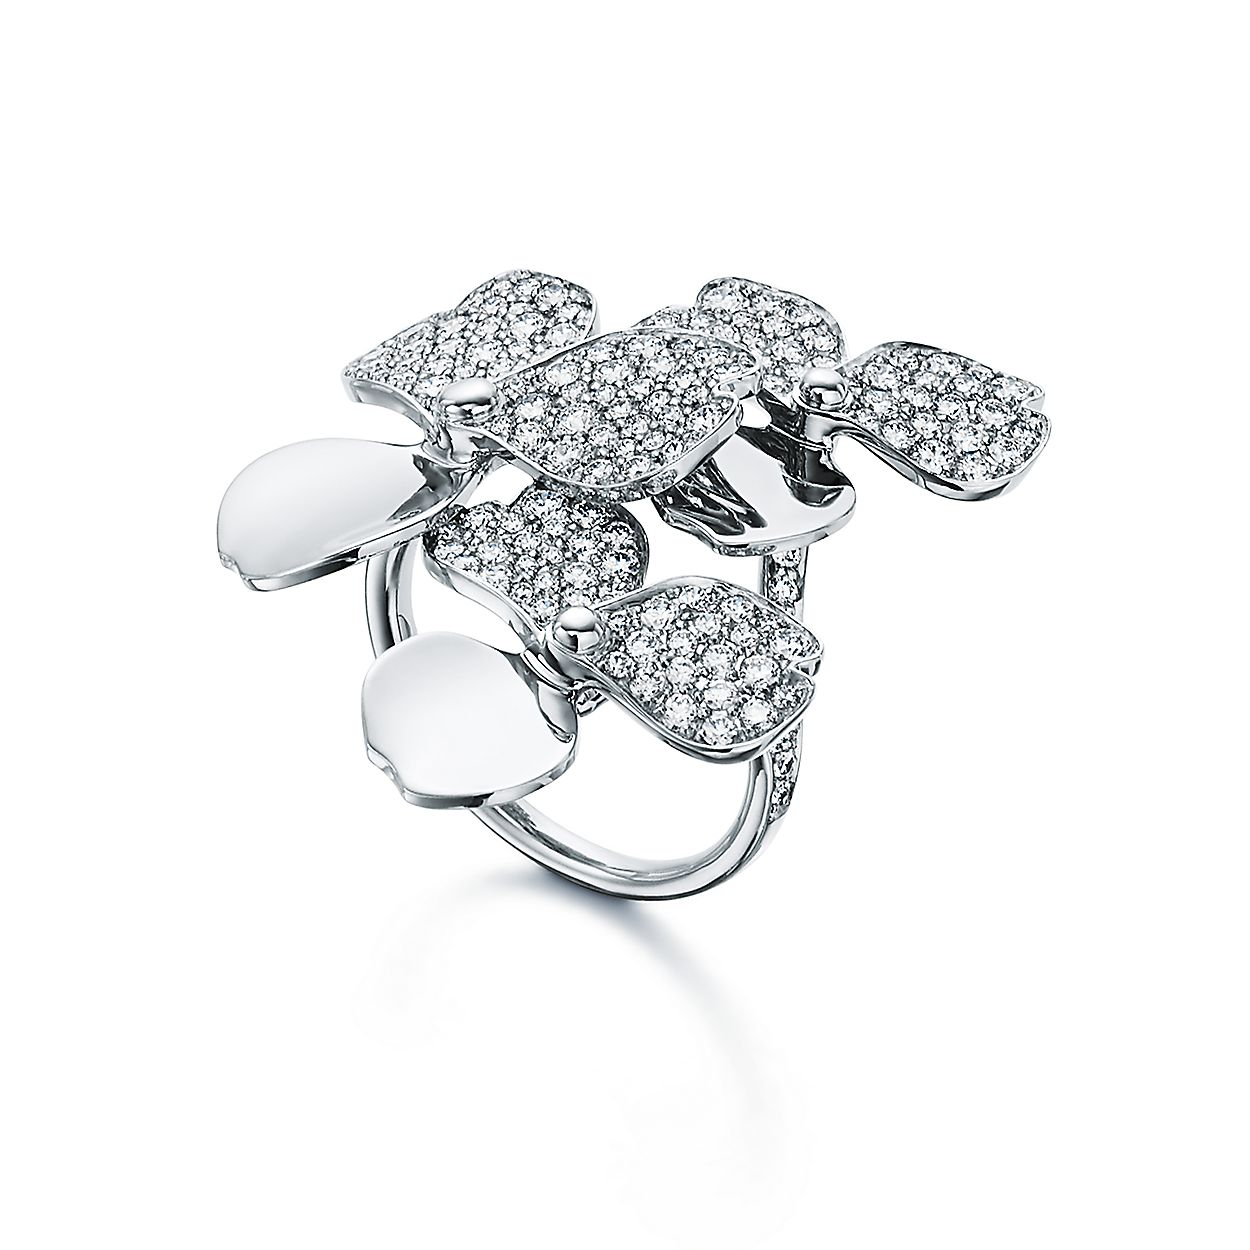 Ring Mit Cluster Diamantbluten